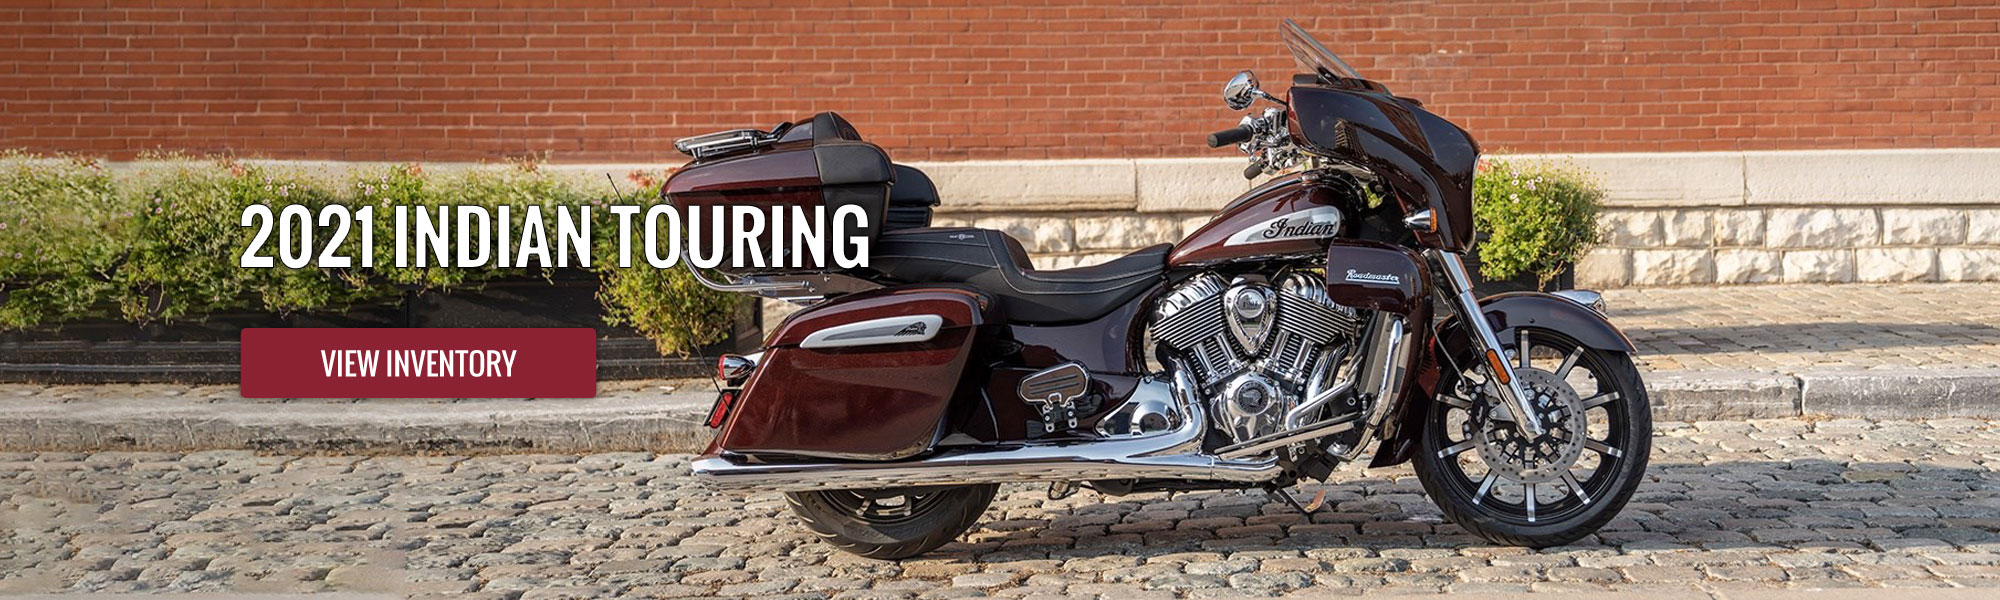 2021 Models - Indian Motorcycle, White Plains 2021 - Touring